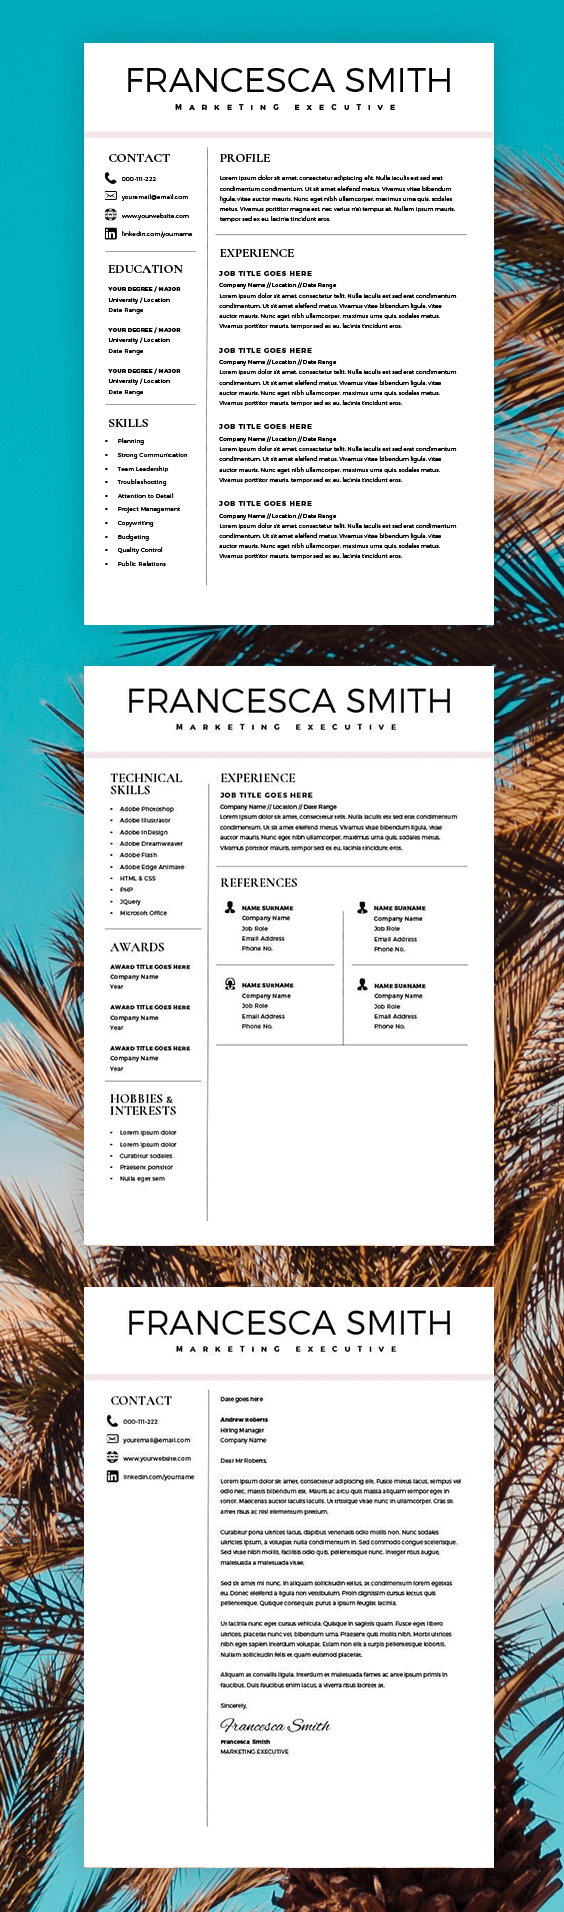 Feminine Resume  Cv Design  Resume Download  Ms Word Resume For